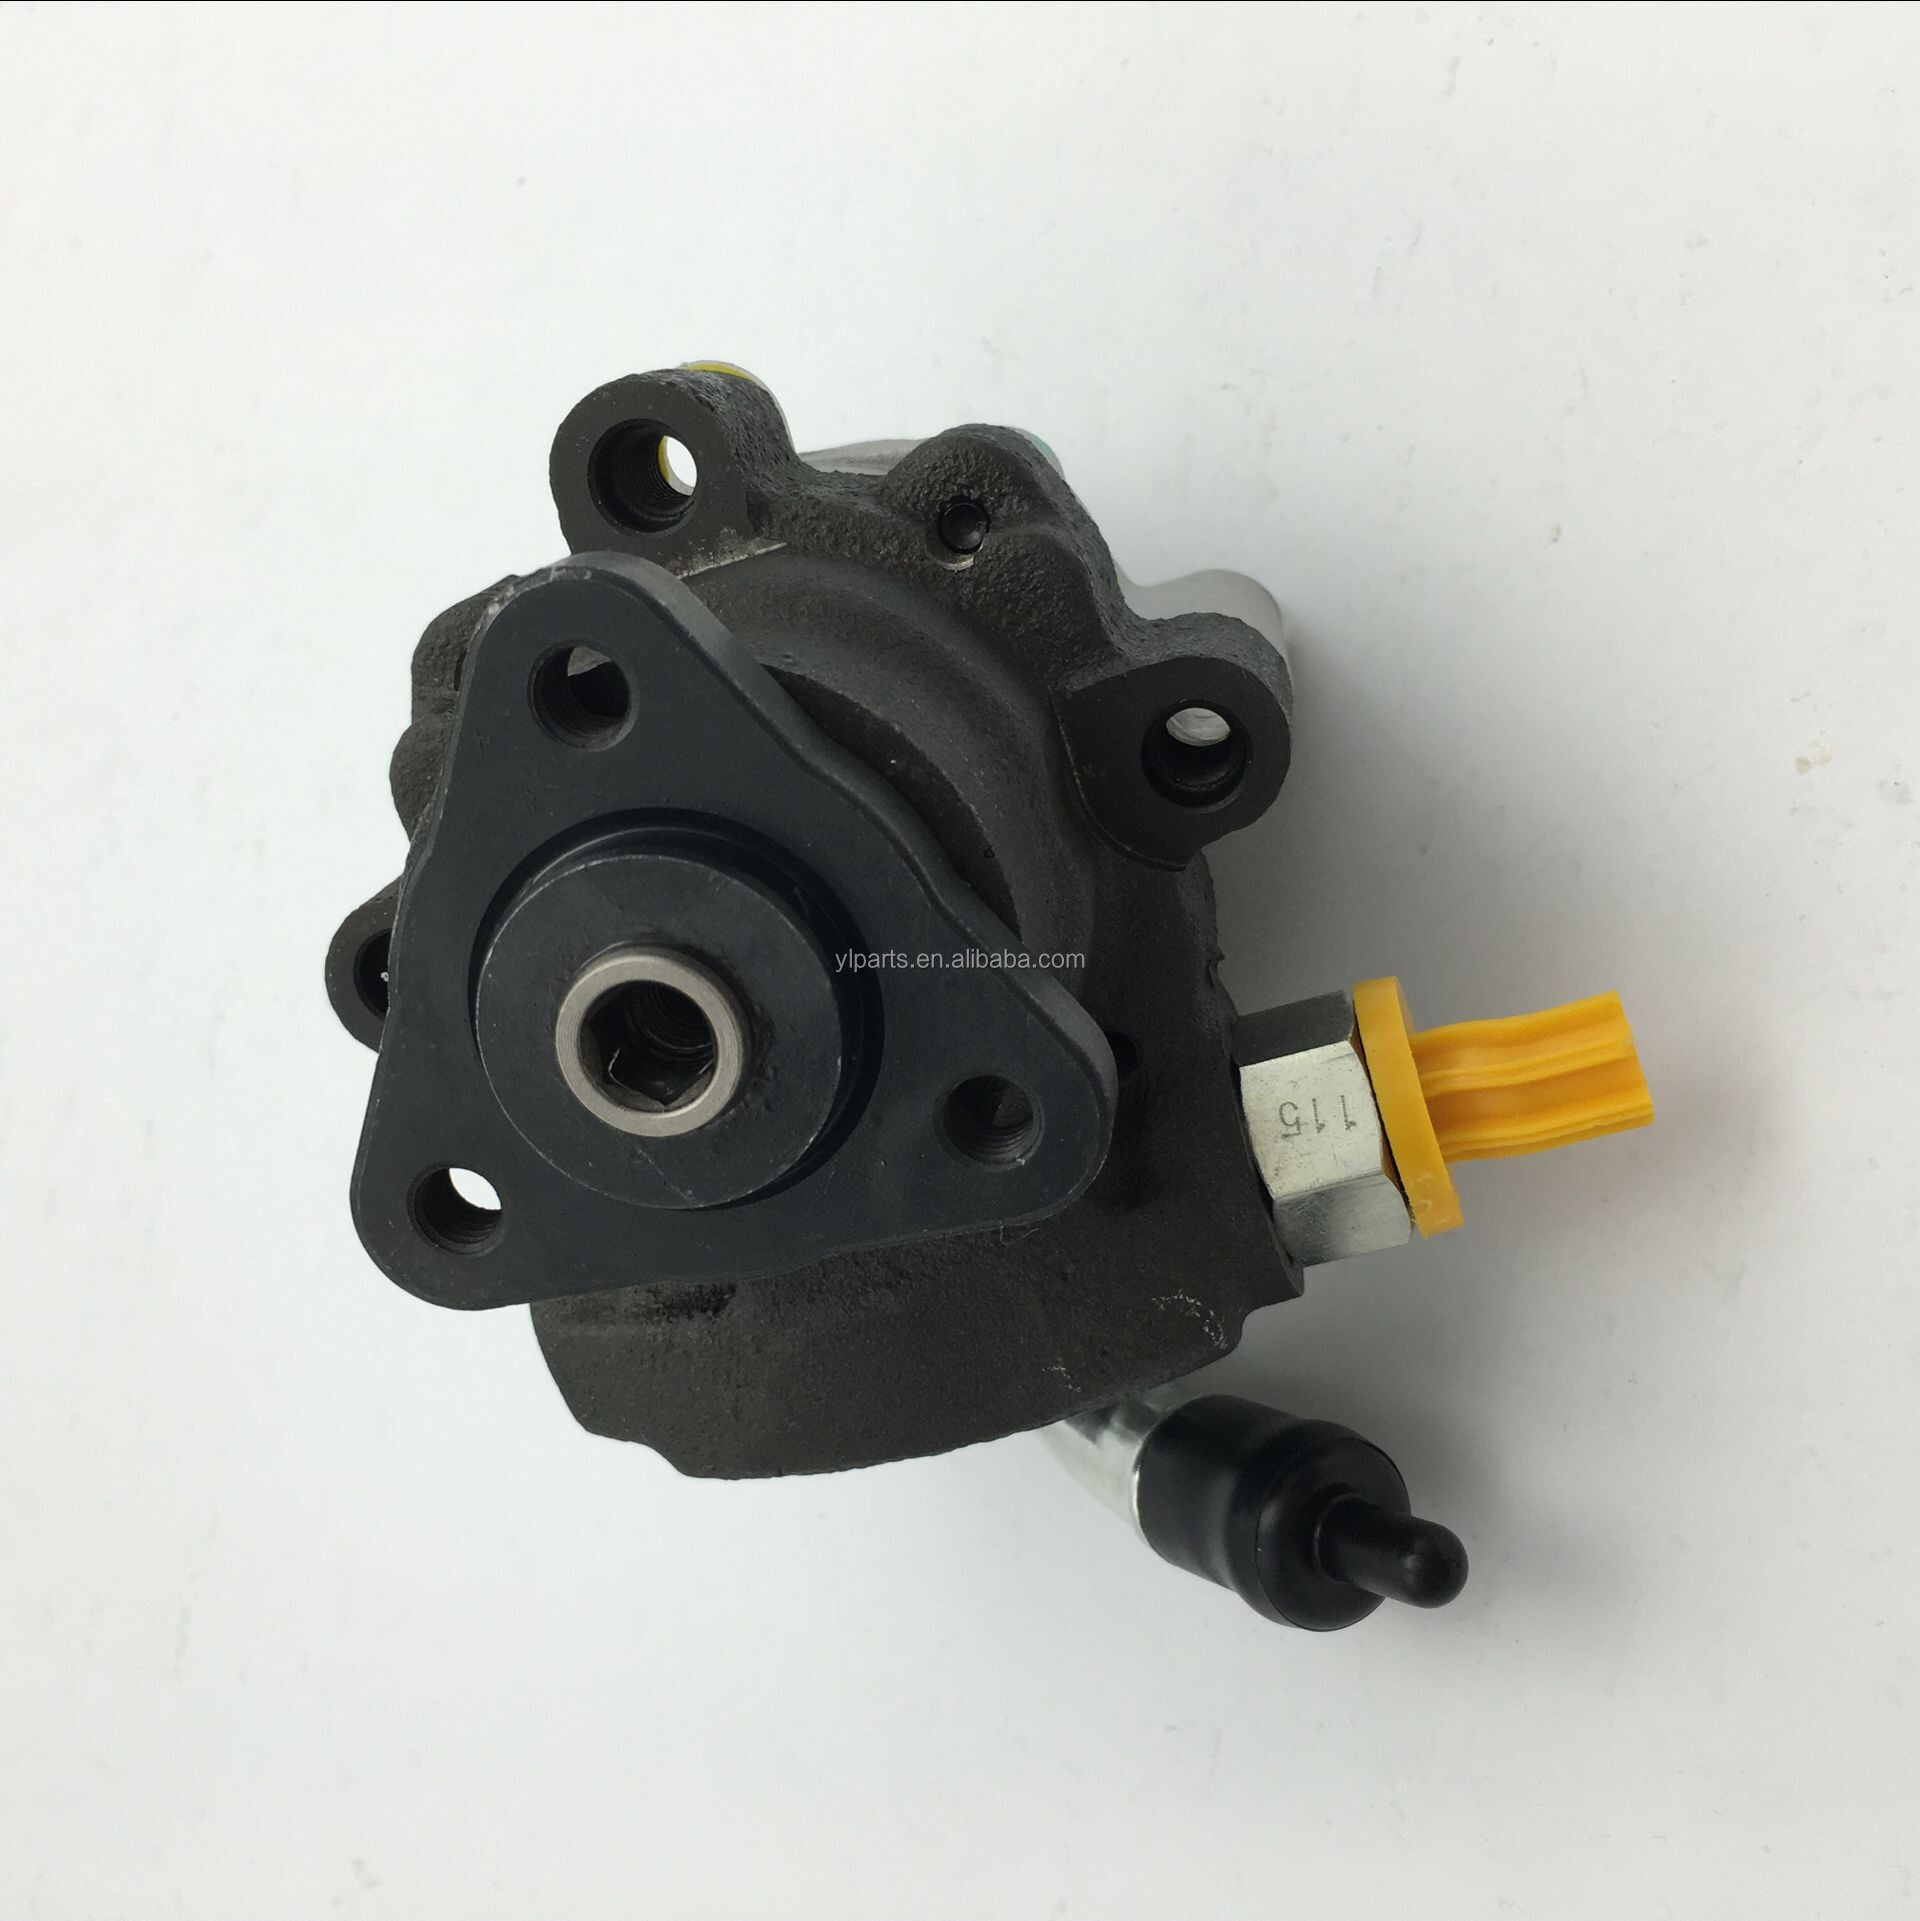 Power Steering Pump ANR2157 Fit LR Range - Rover/ Discovery/ Defender 87-99